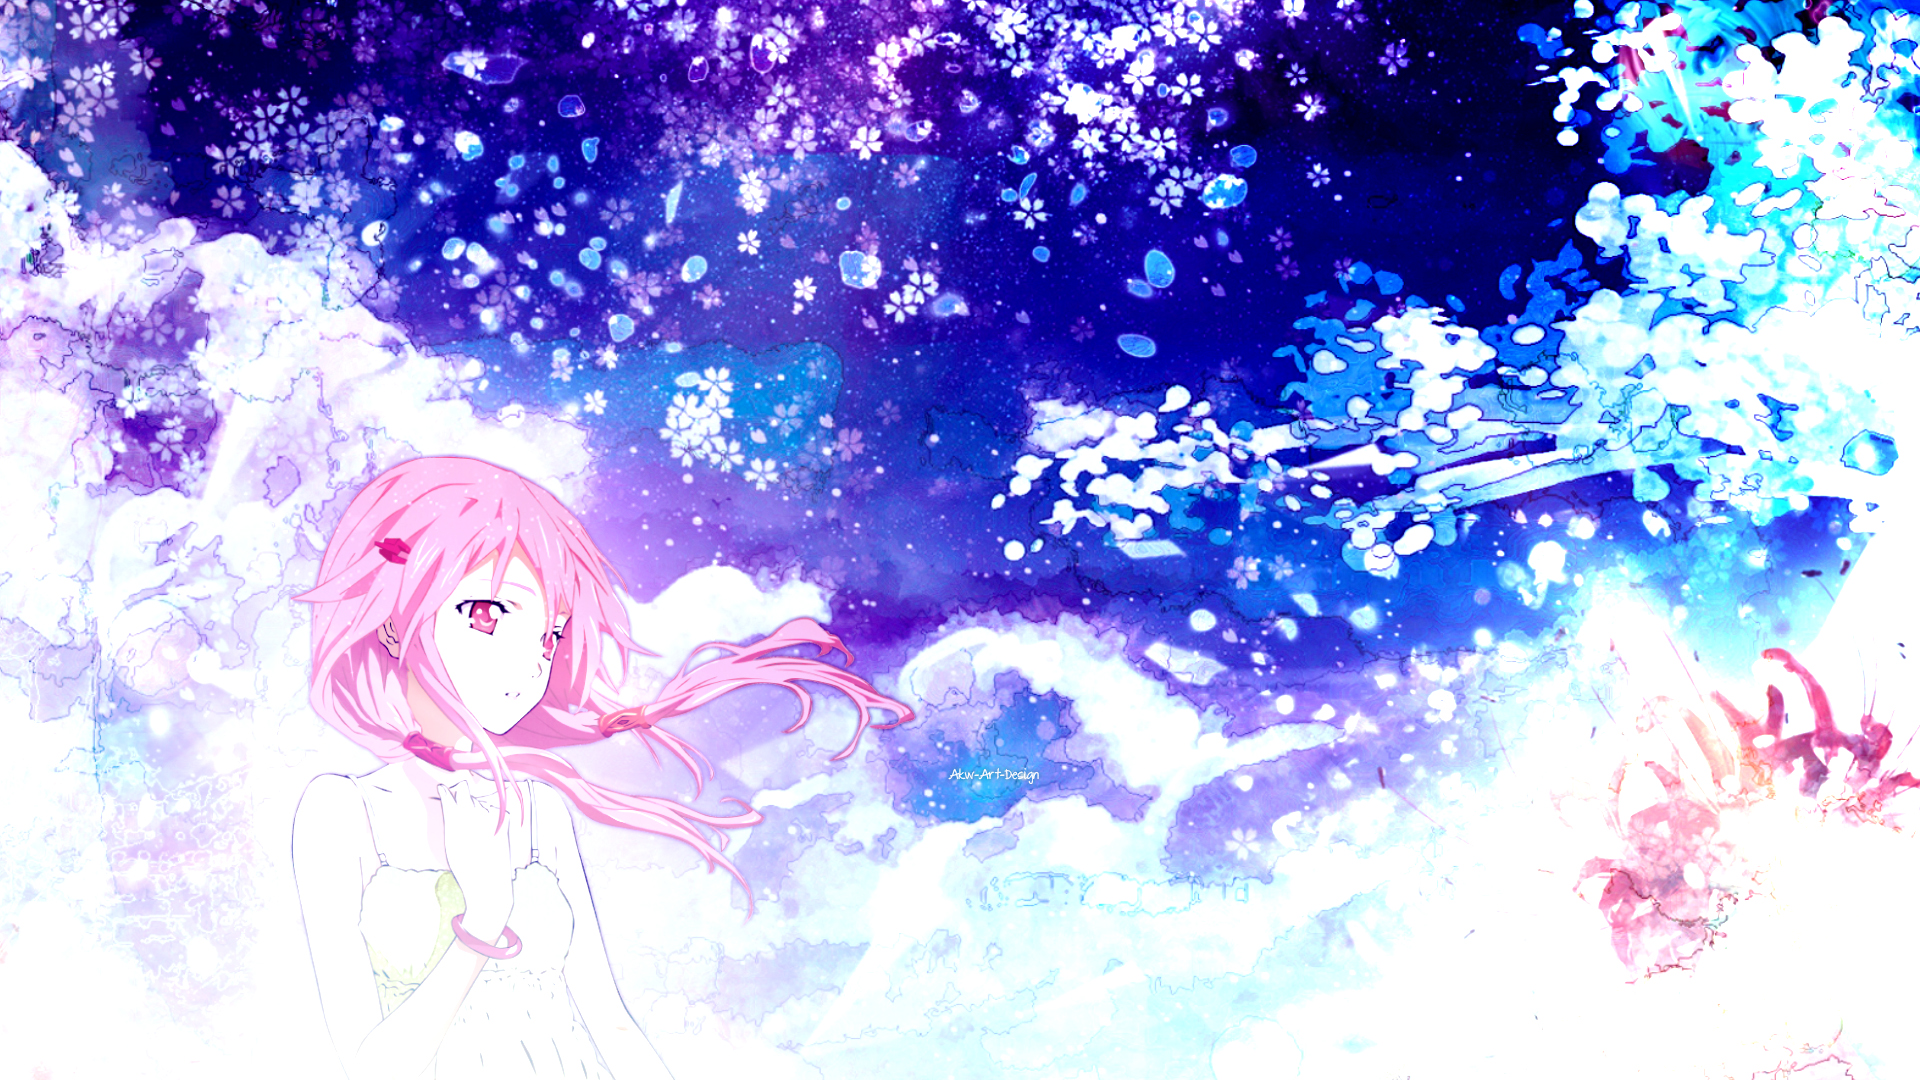 Guilty Crown Wallpaper Inori: Guilty Crown Inori By Akw-Art-Design On DeviantArt